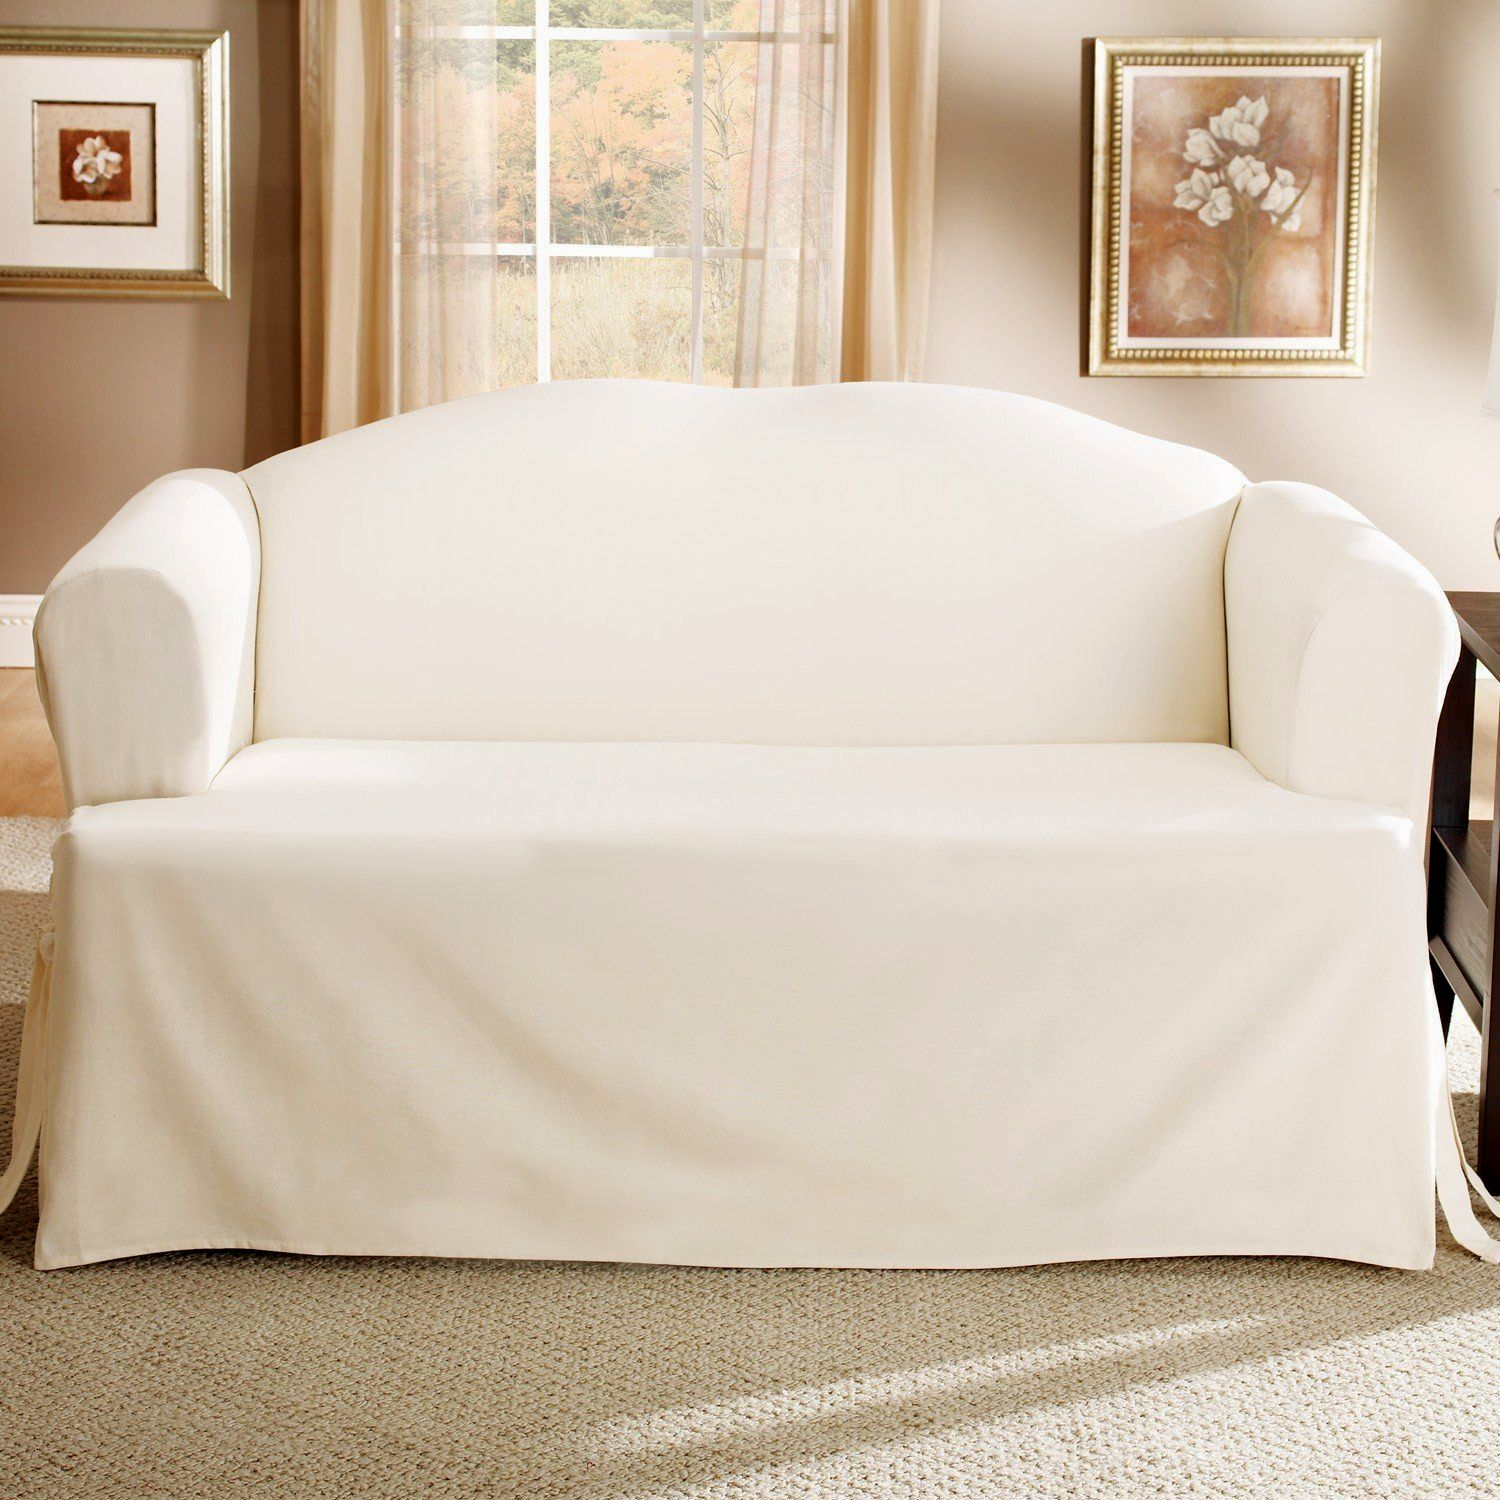 finest slipcover sofa ikea model-Best Slipcover sofa Ikea Concept